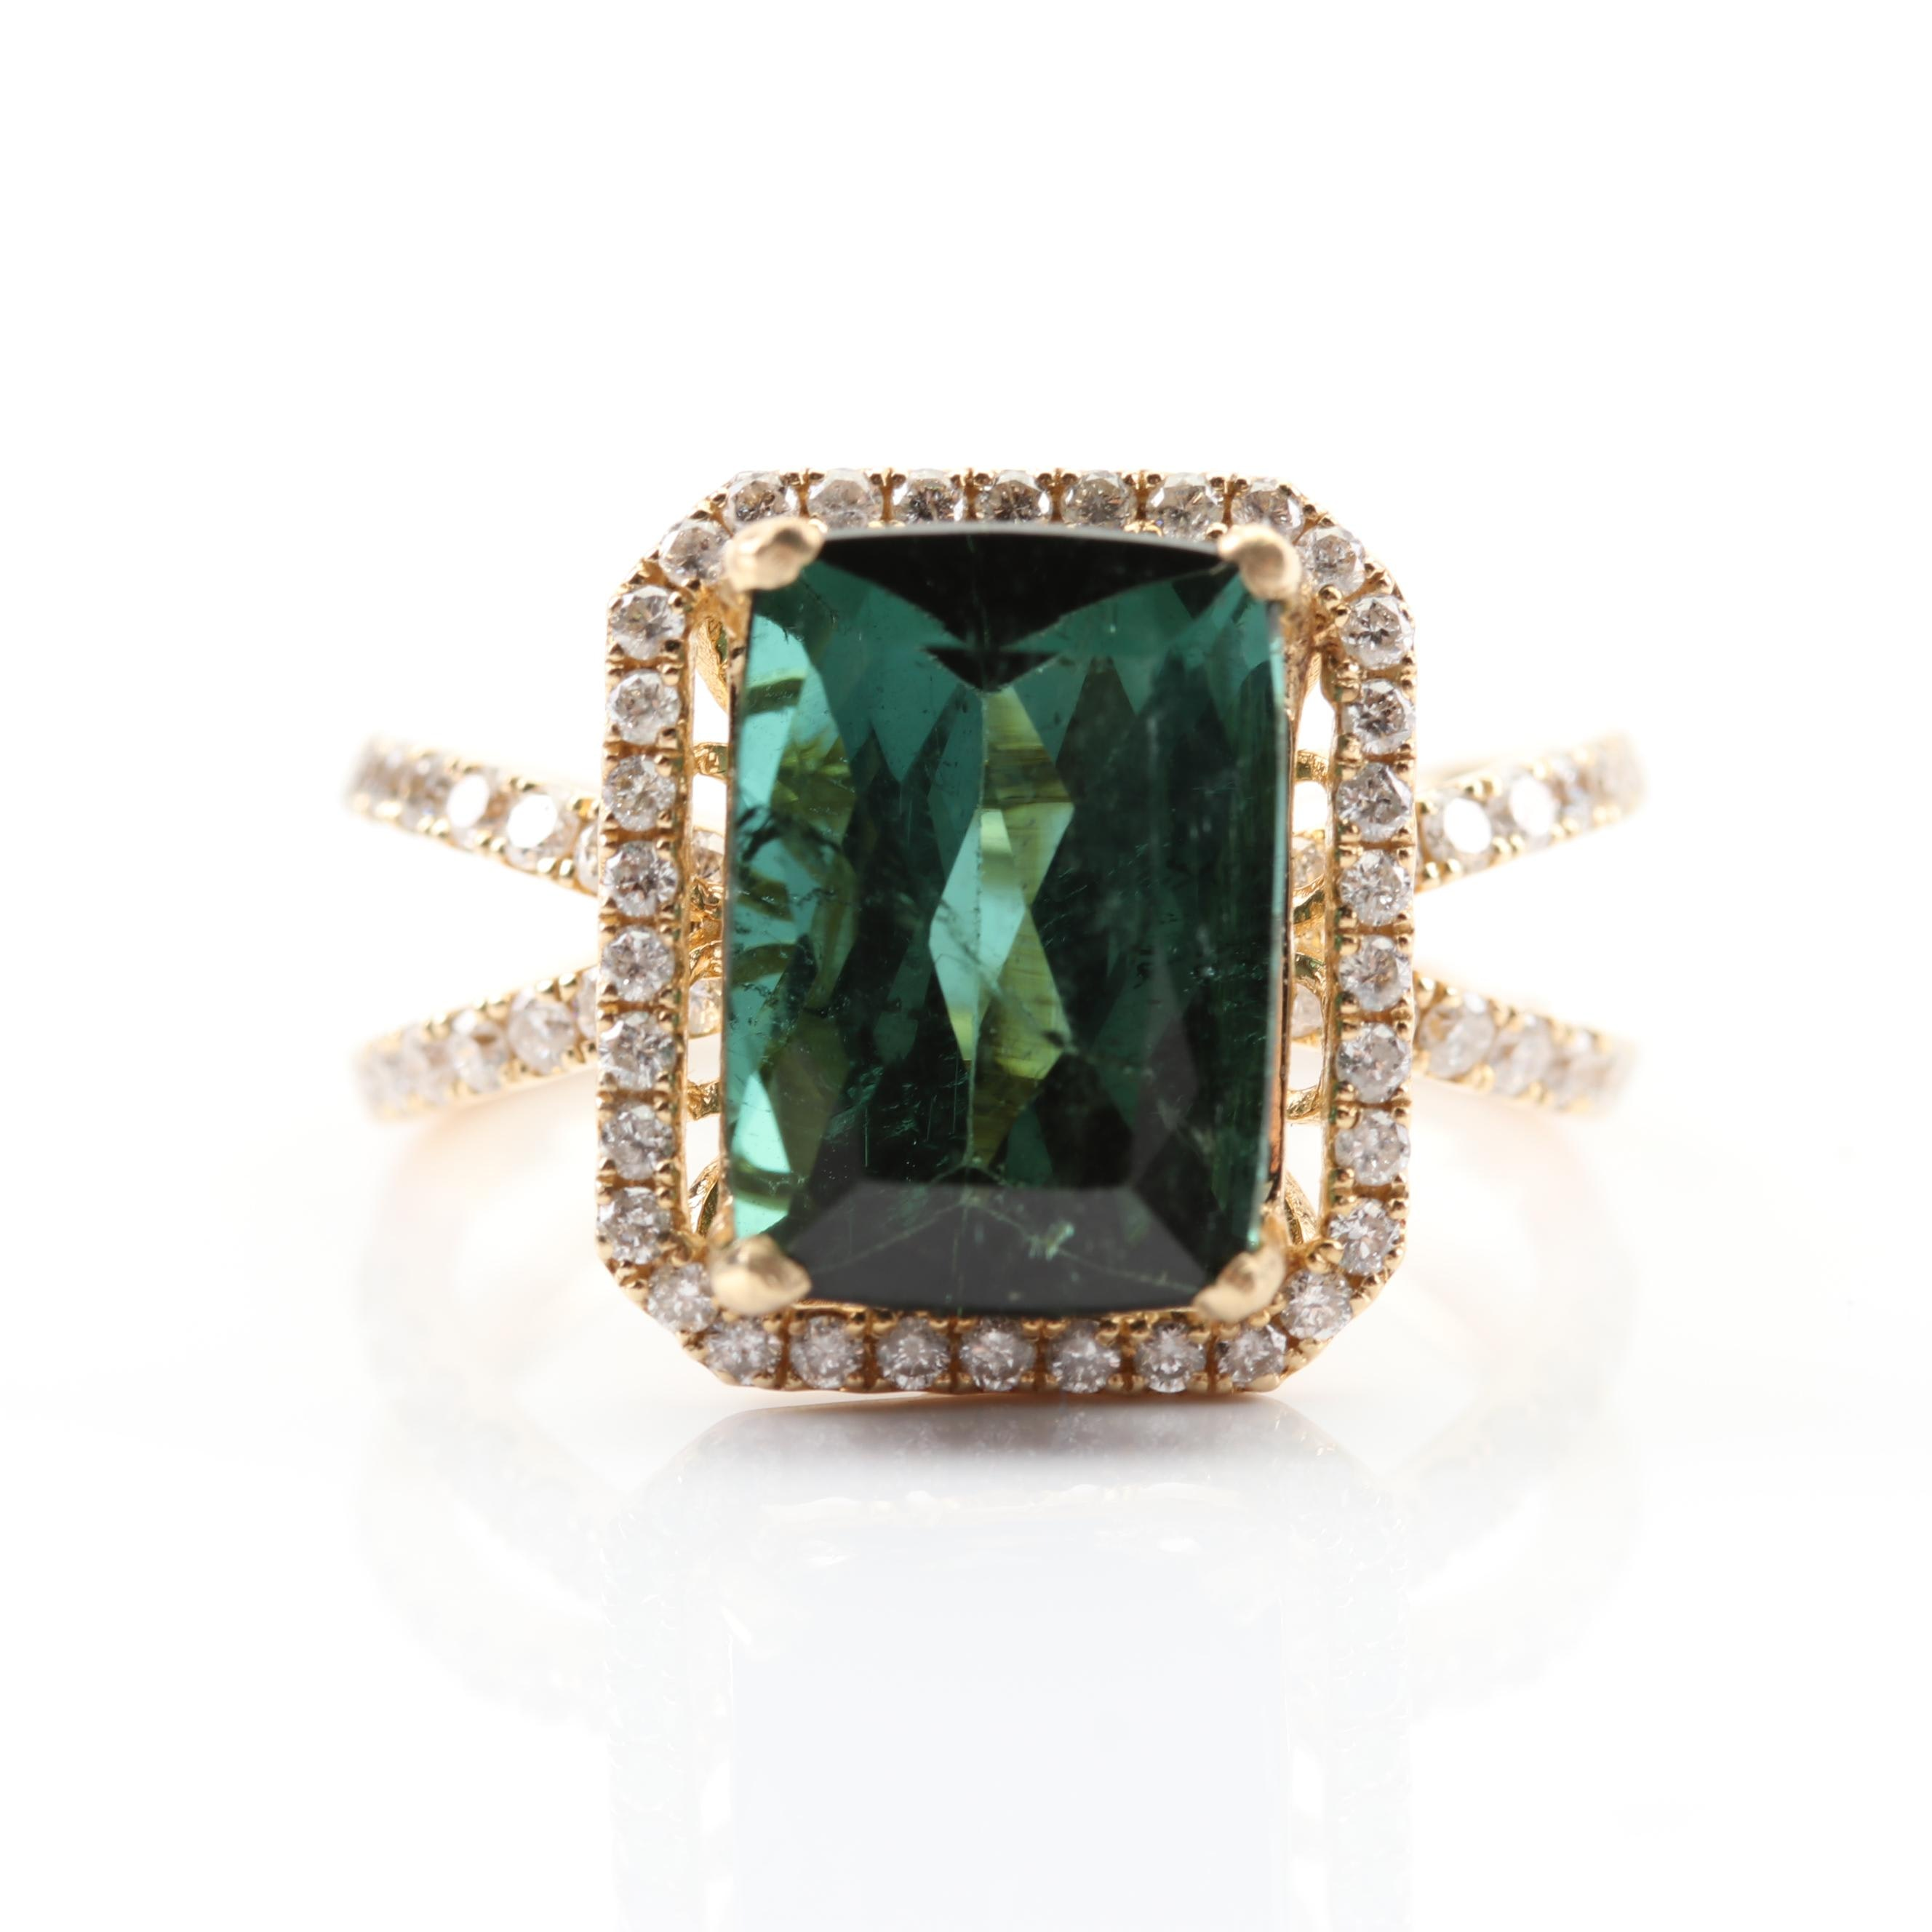 14K Yellow Gold 4.23 CT Green Tourmaline and Diamond Halo Ring